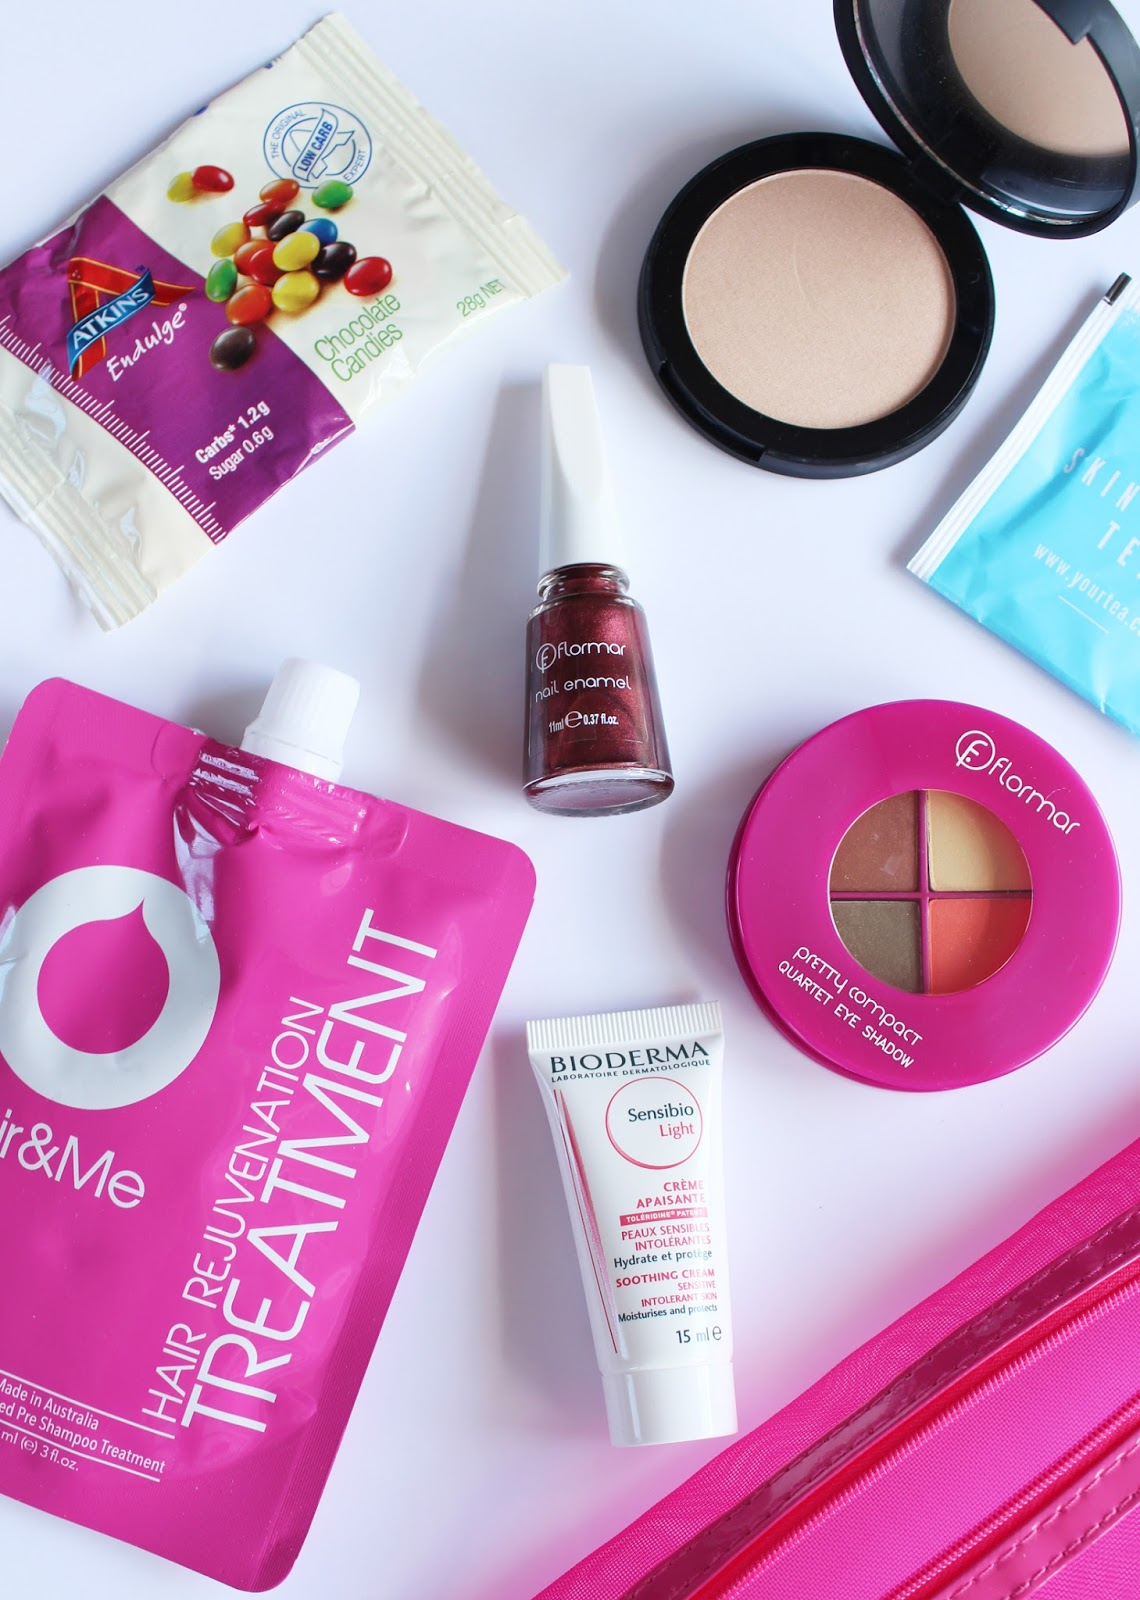 LUST HAVE IT | Women's Beauty Box October '15 - Unboxing + Initial Thoughts - CassandraMyee